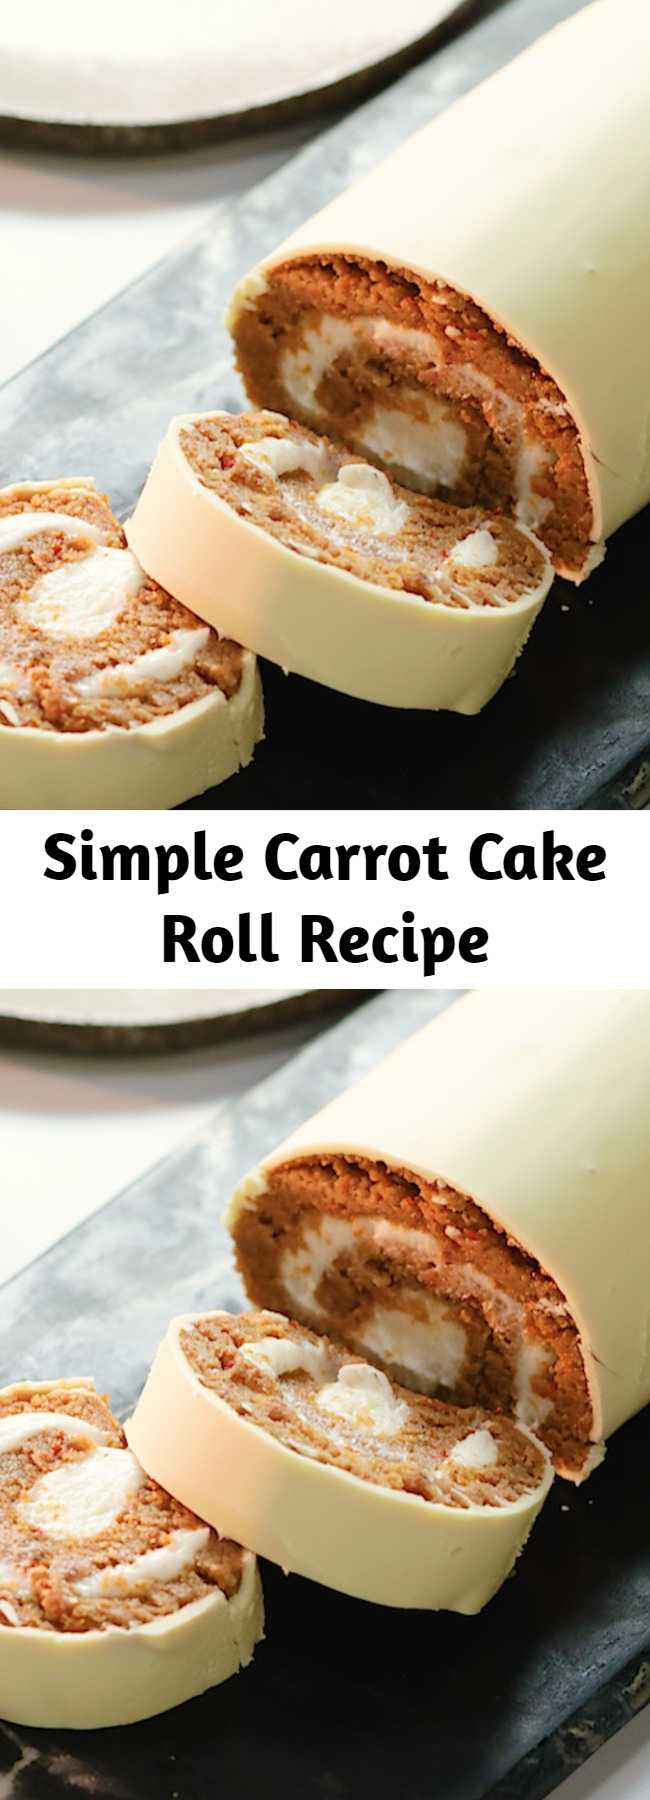 Simple Carrot Cake Roll Recipe - All the flavours of a classic carrot cake (quite literally) rolled into one! Our simple and sweet carrot cake roll cake recipe will leave you and the kids wanting more after every bite.